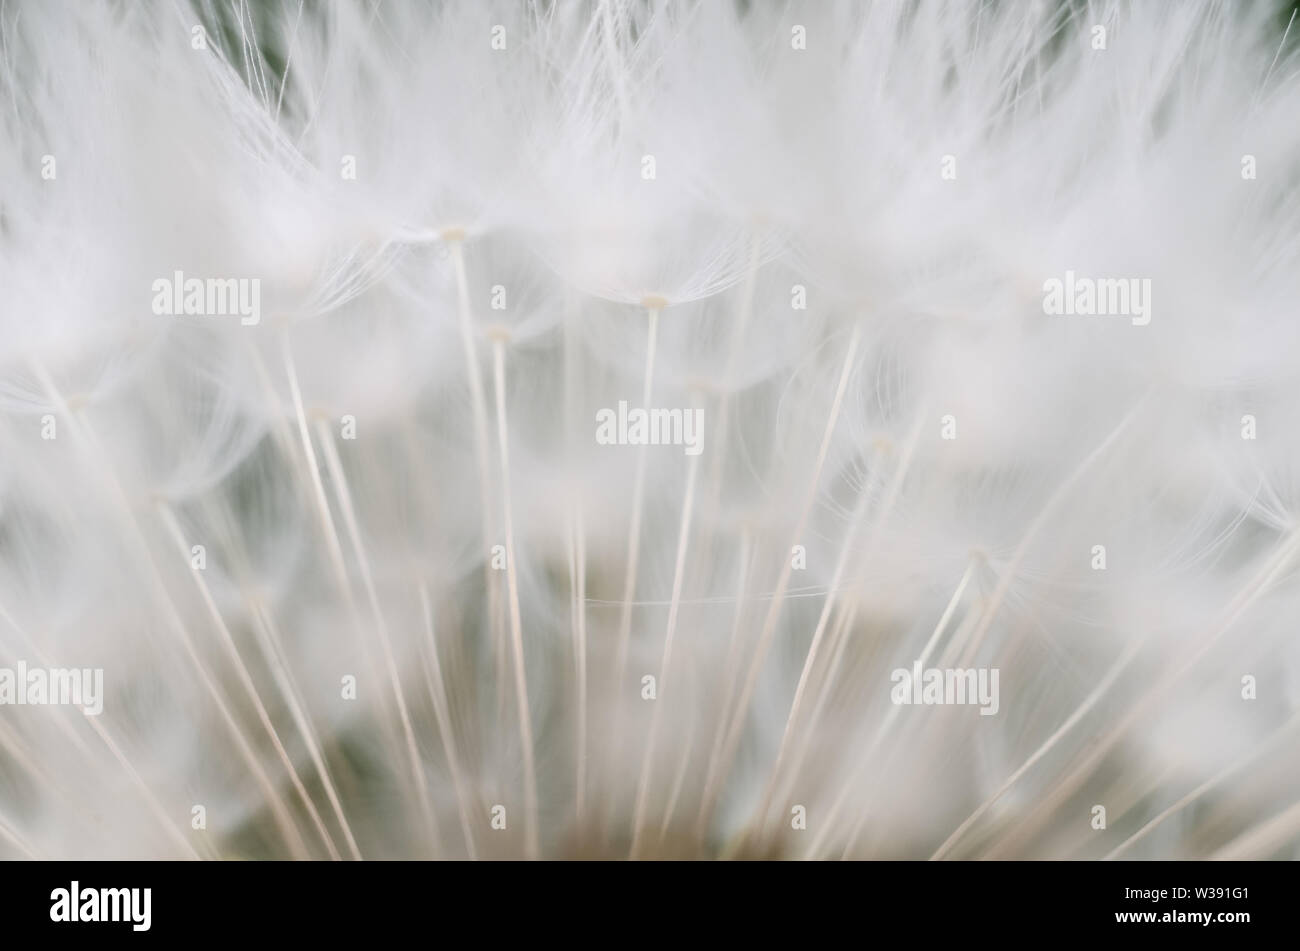 Taraxacum officinale, Crepidinae, Asteraceae, macro photograph of a dandelion flower with focus on the seeds Stock Photo